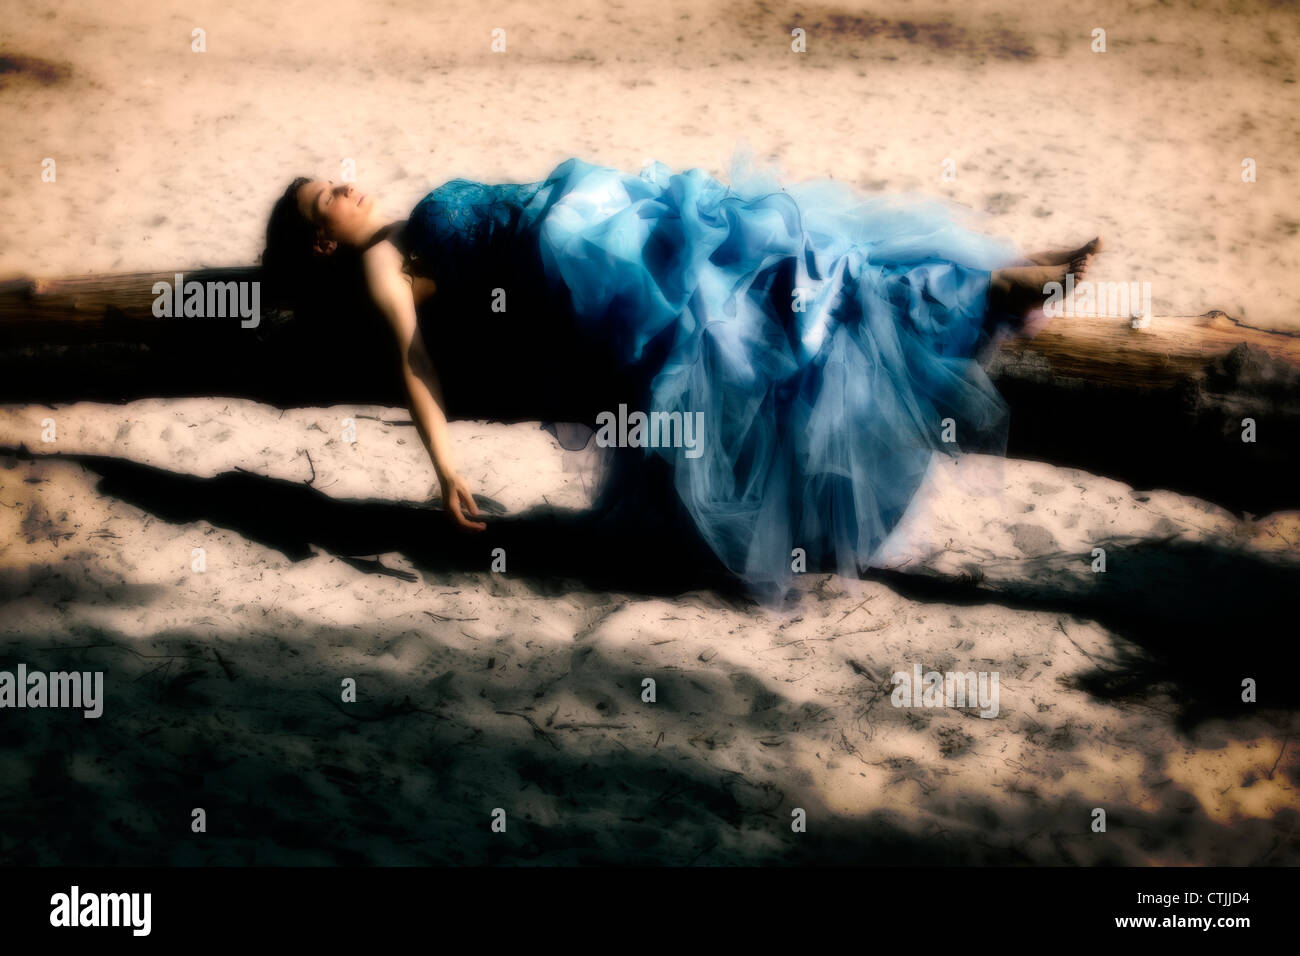 a woman in evening dress lying on a tree trunk - Stock Image